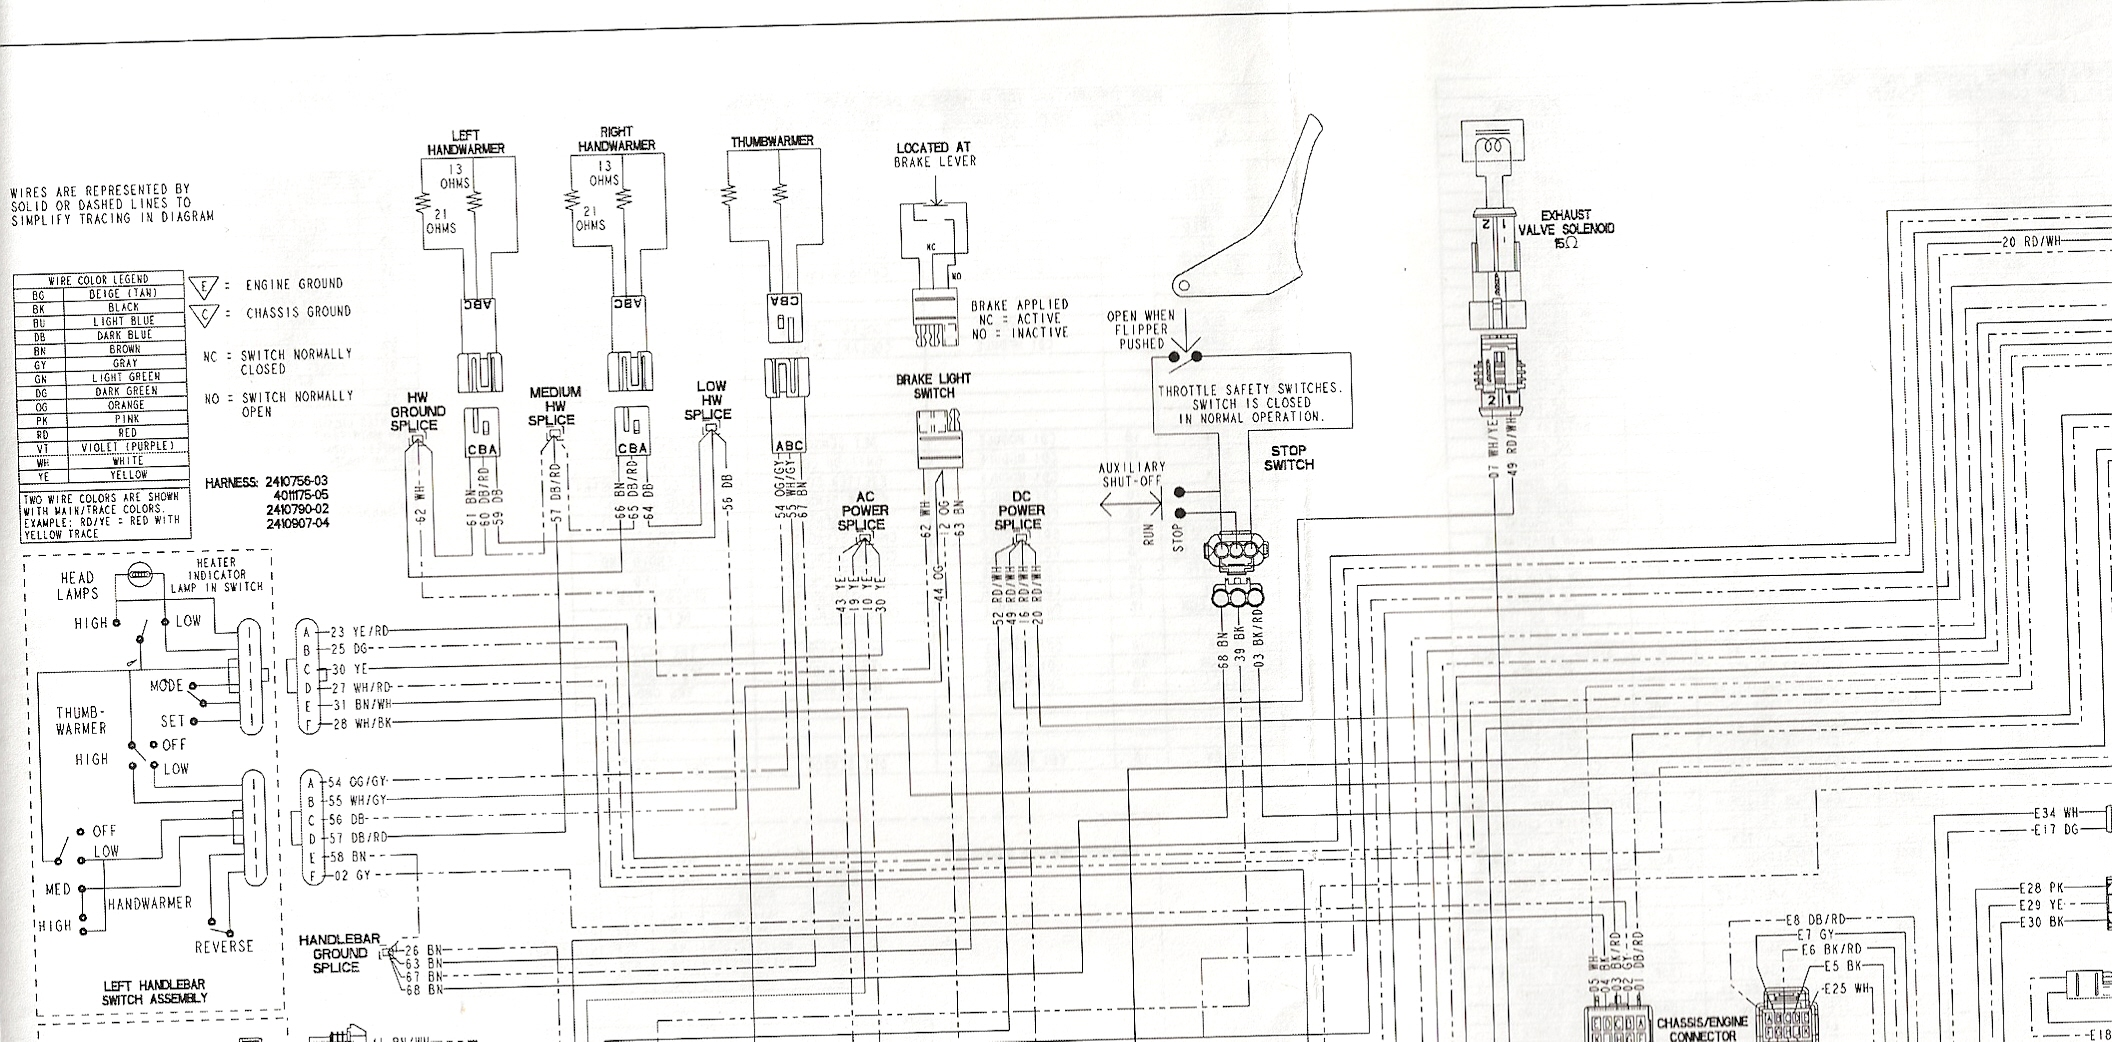 wiring diagram 2000 polaris scrambler 4x4 2000 polaris wiring diagram e3 wiring diagram  2000 polaris wiring diagram e3 wiring